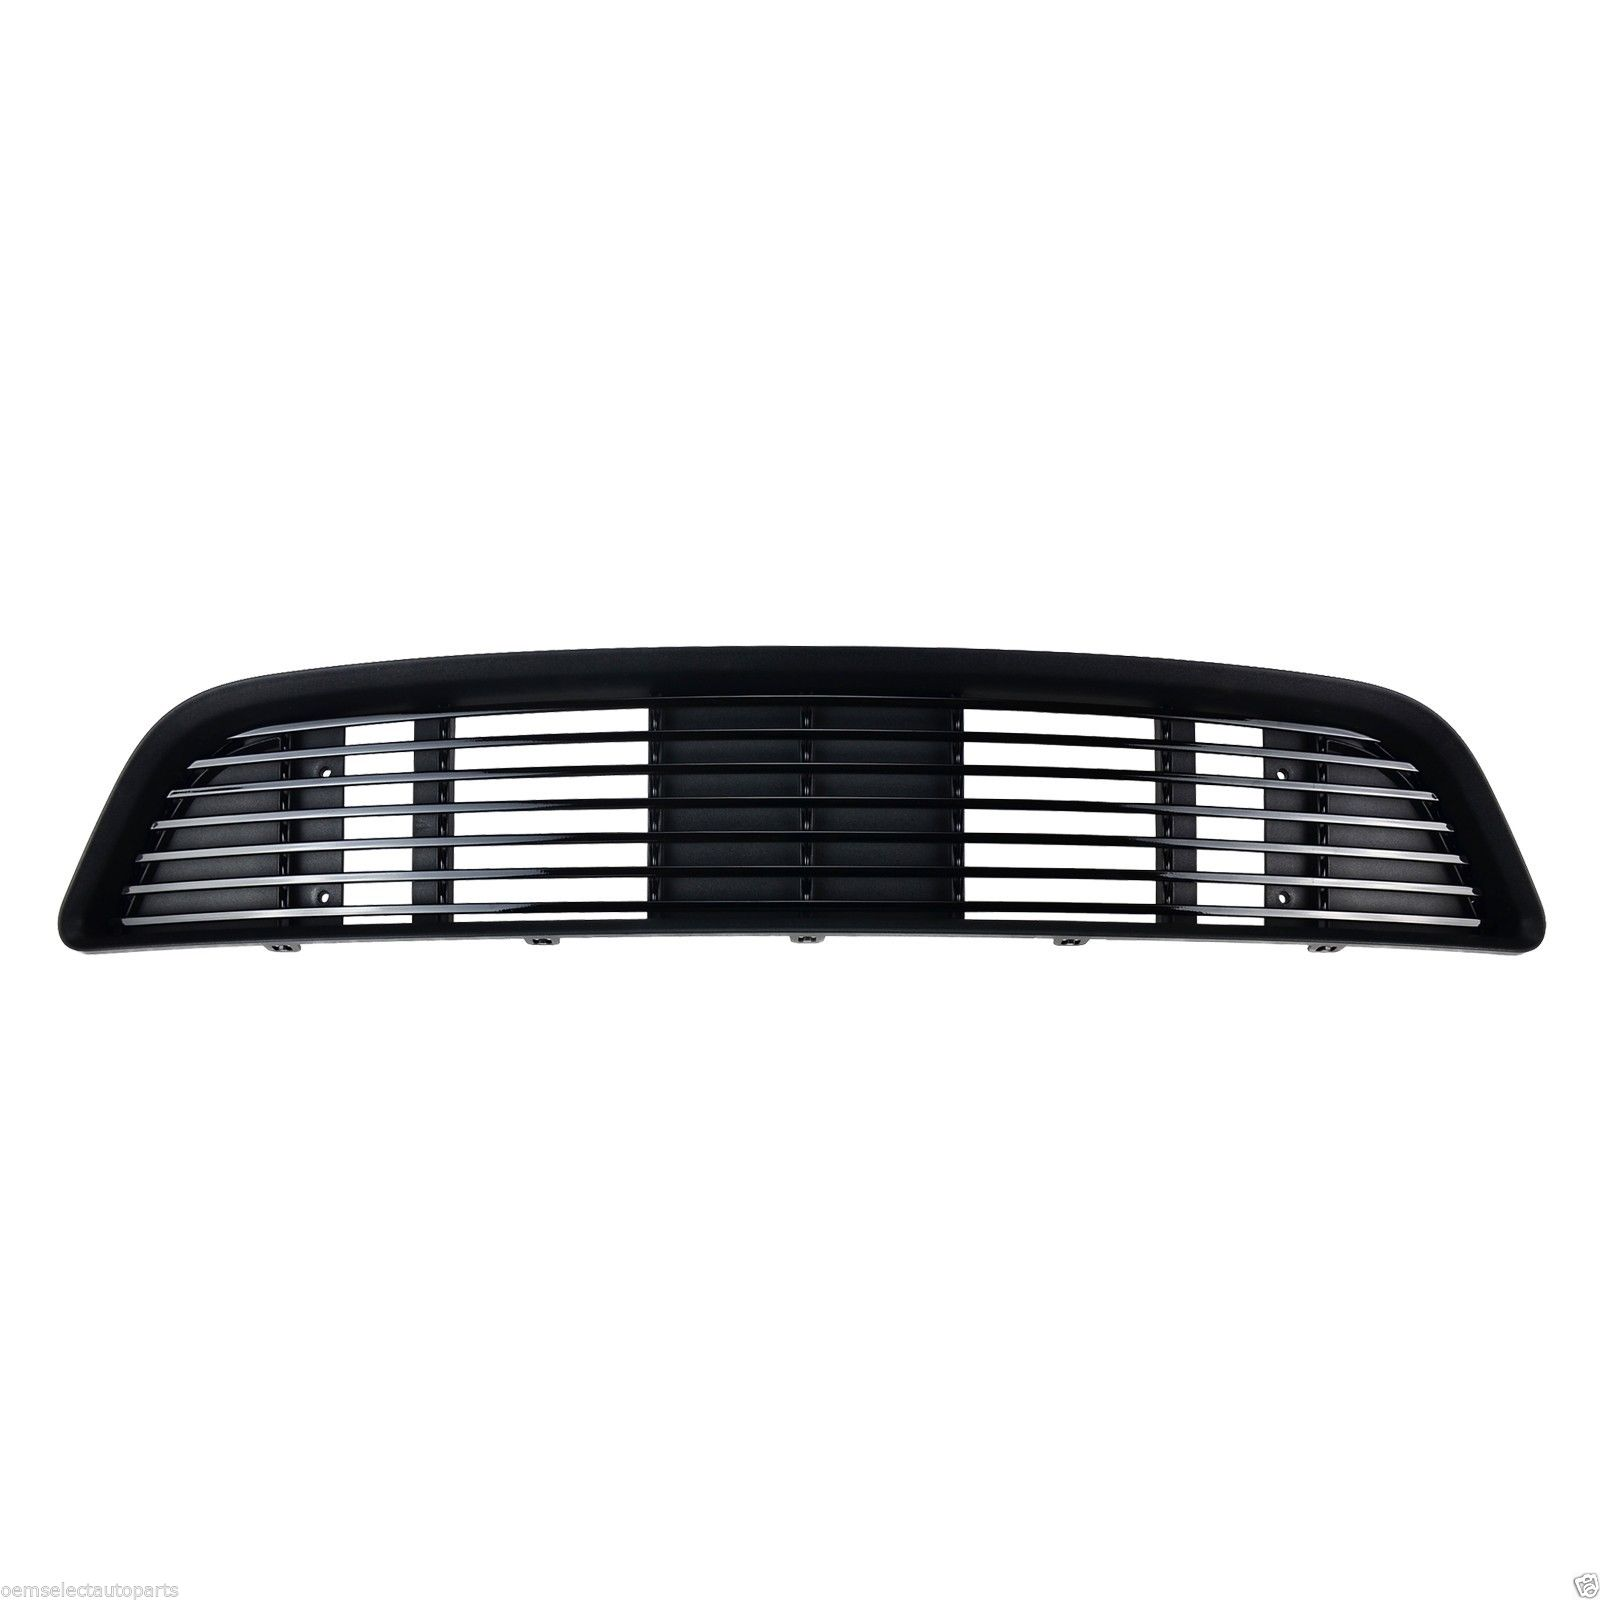 Grila radiator Ford Mustang,(California Special) 02.2013-2015, DR3Z-8200-CC